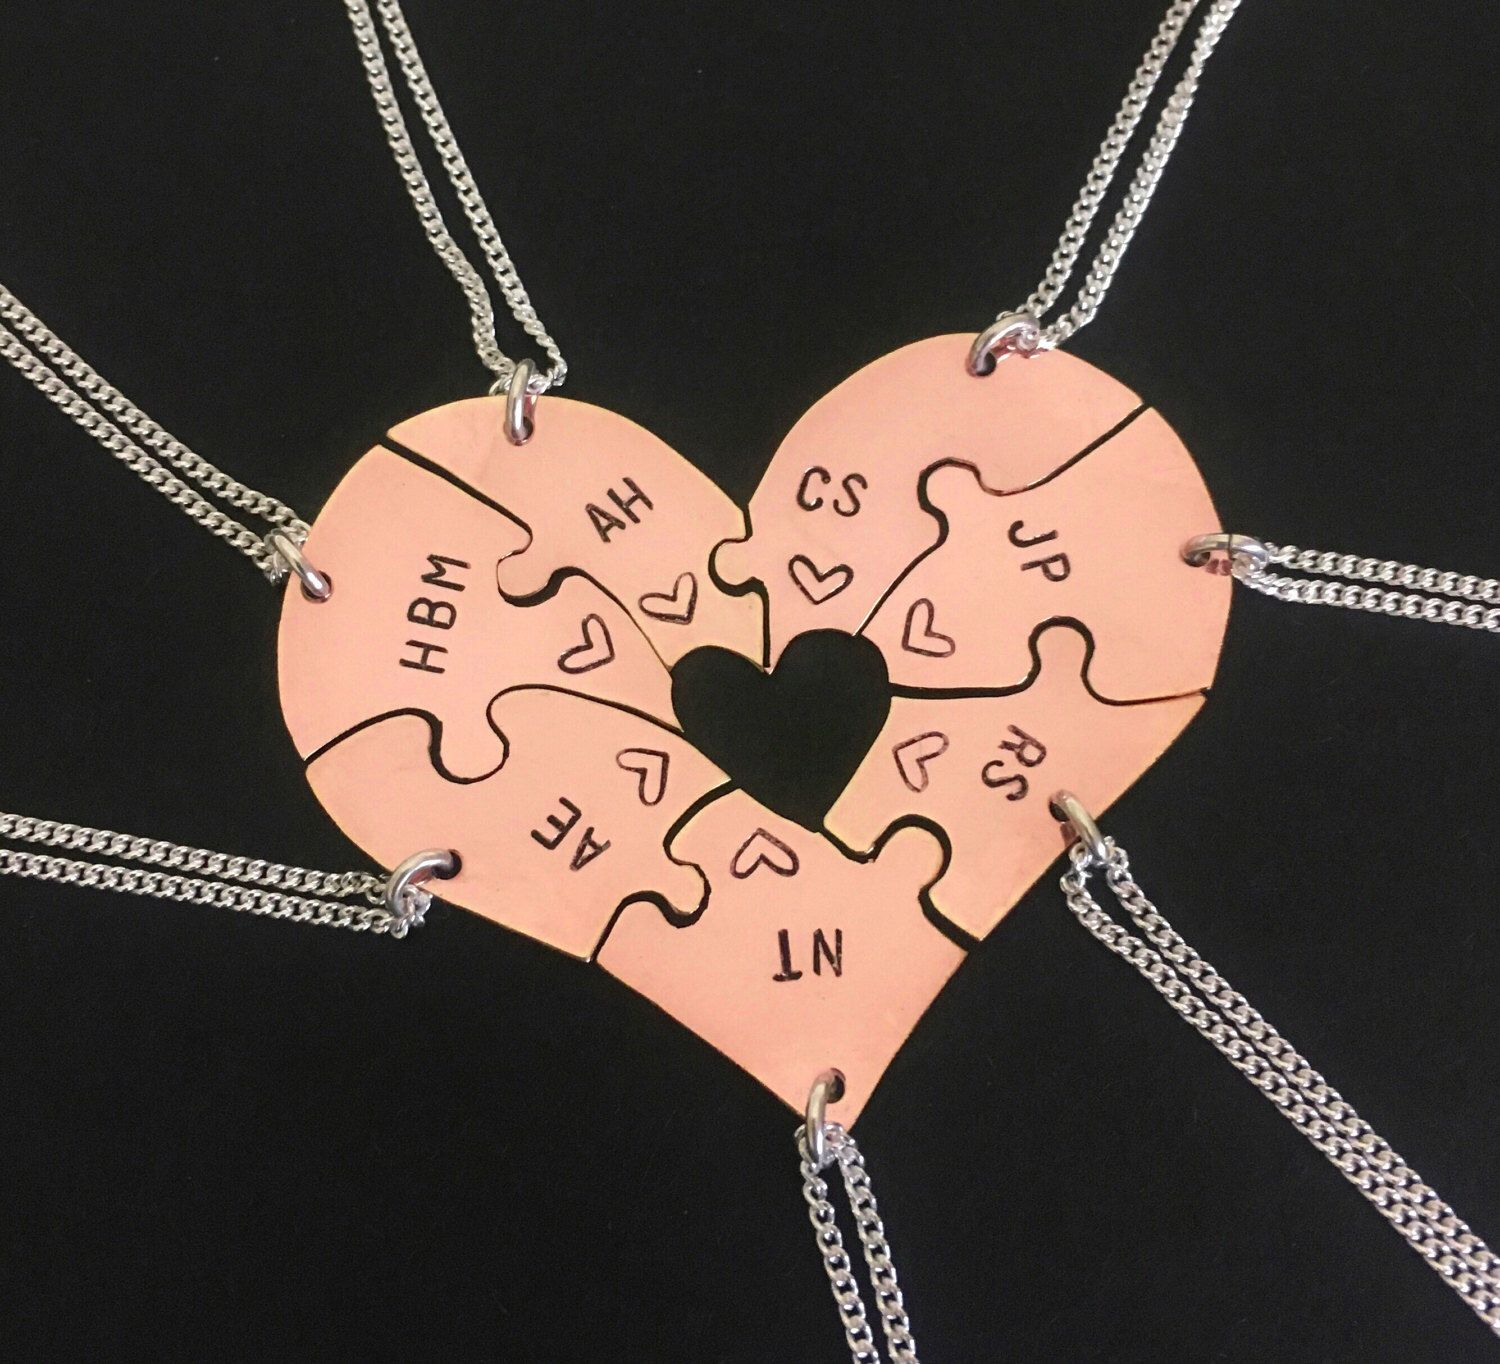 14 Karat Rose Gold Engraved Heart Puzzle Necklaces Shaped Like A Heart Perfect For 7 Friendship Family Friend Jewelry Friend Necklaces Best Friend Jewelry